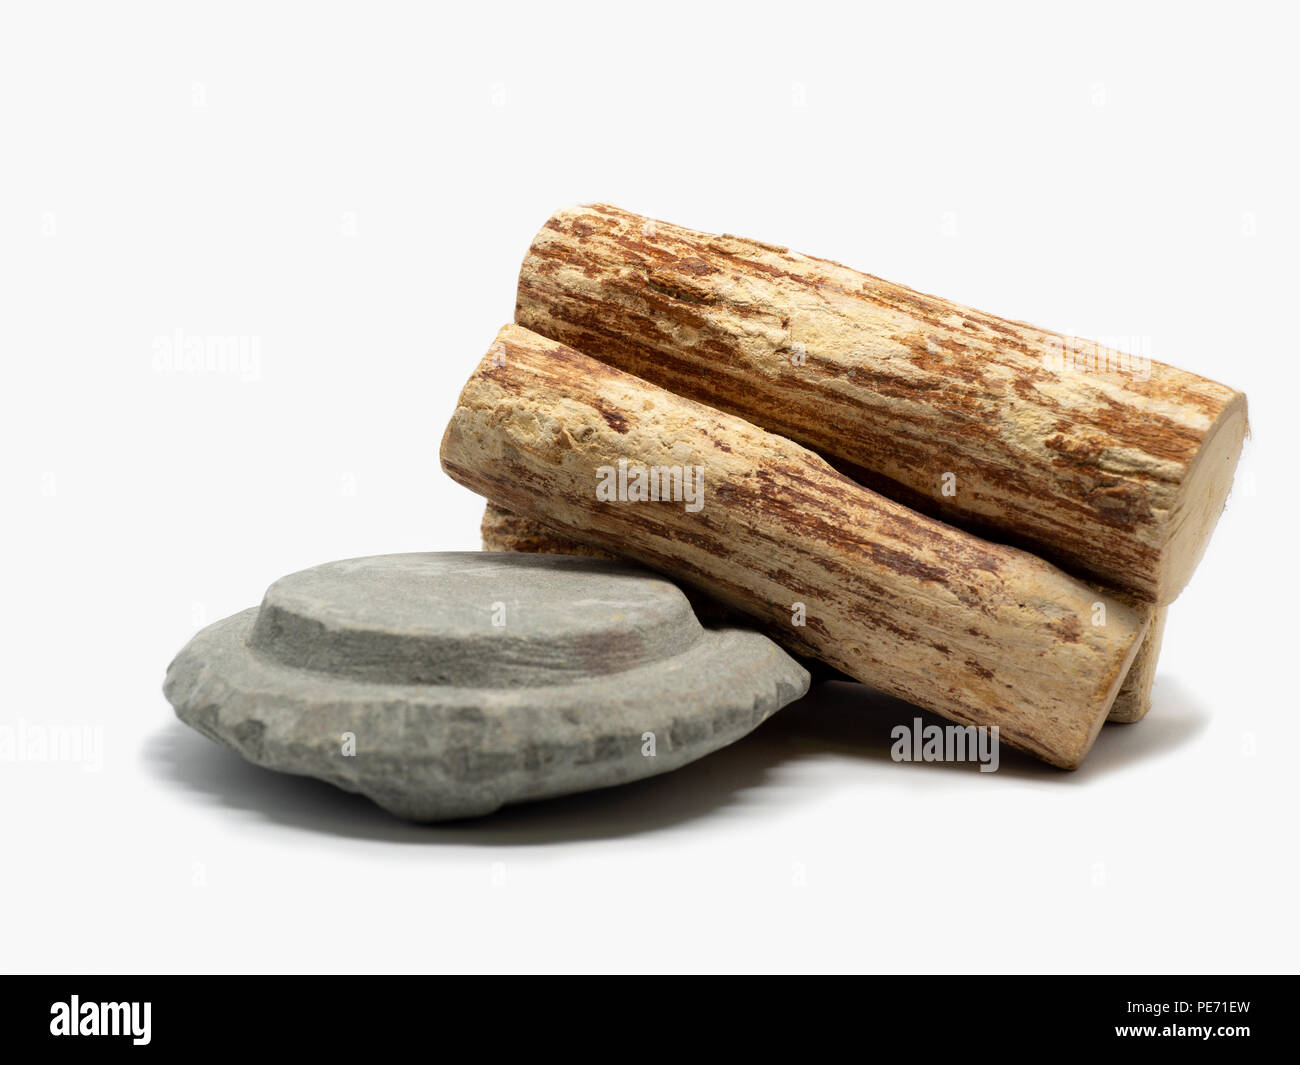 Thanaka wood and Kyauk pyin stone slab on white background (Isolated background). The Tanaka is popular with Burmese women. The face to make a beautif - Stock Image